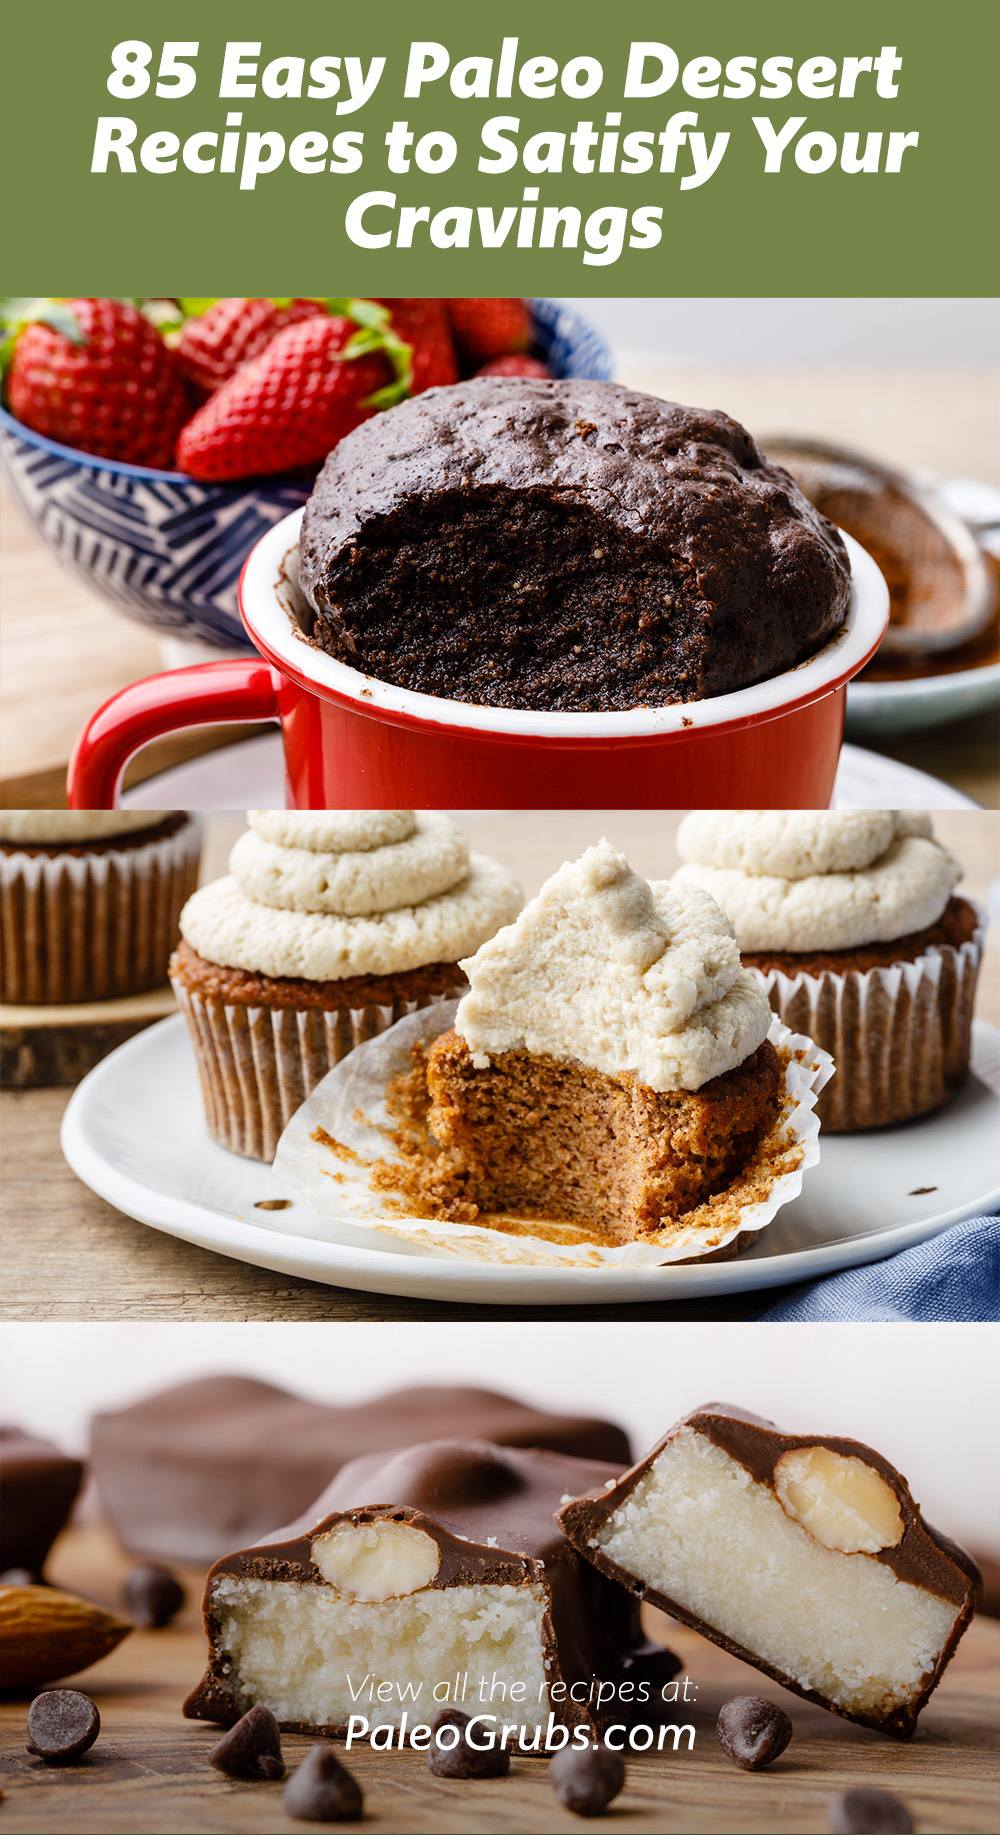 85 Easy Paleo Dessert Recipes to Satisfy Your Cravings